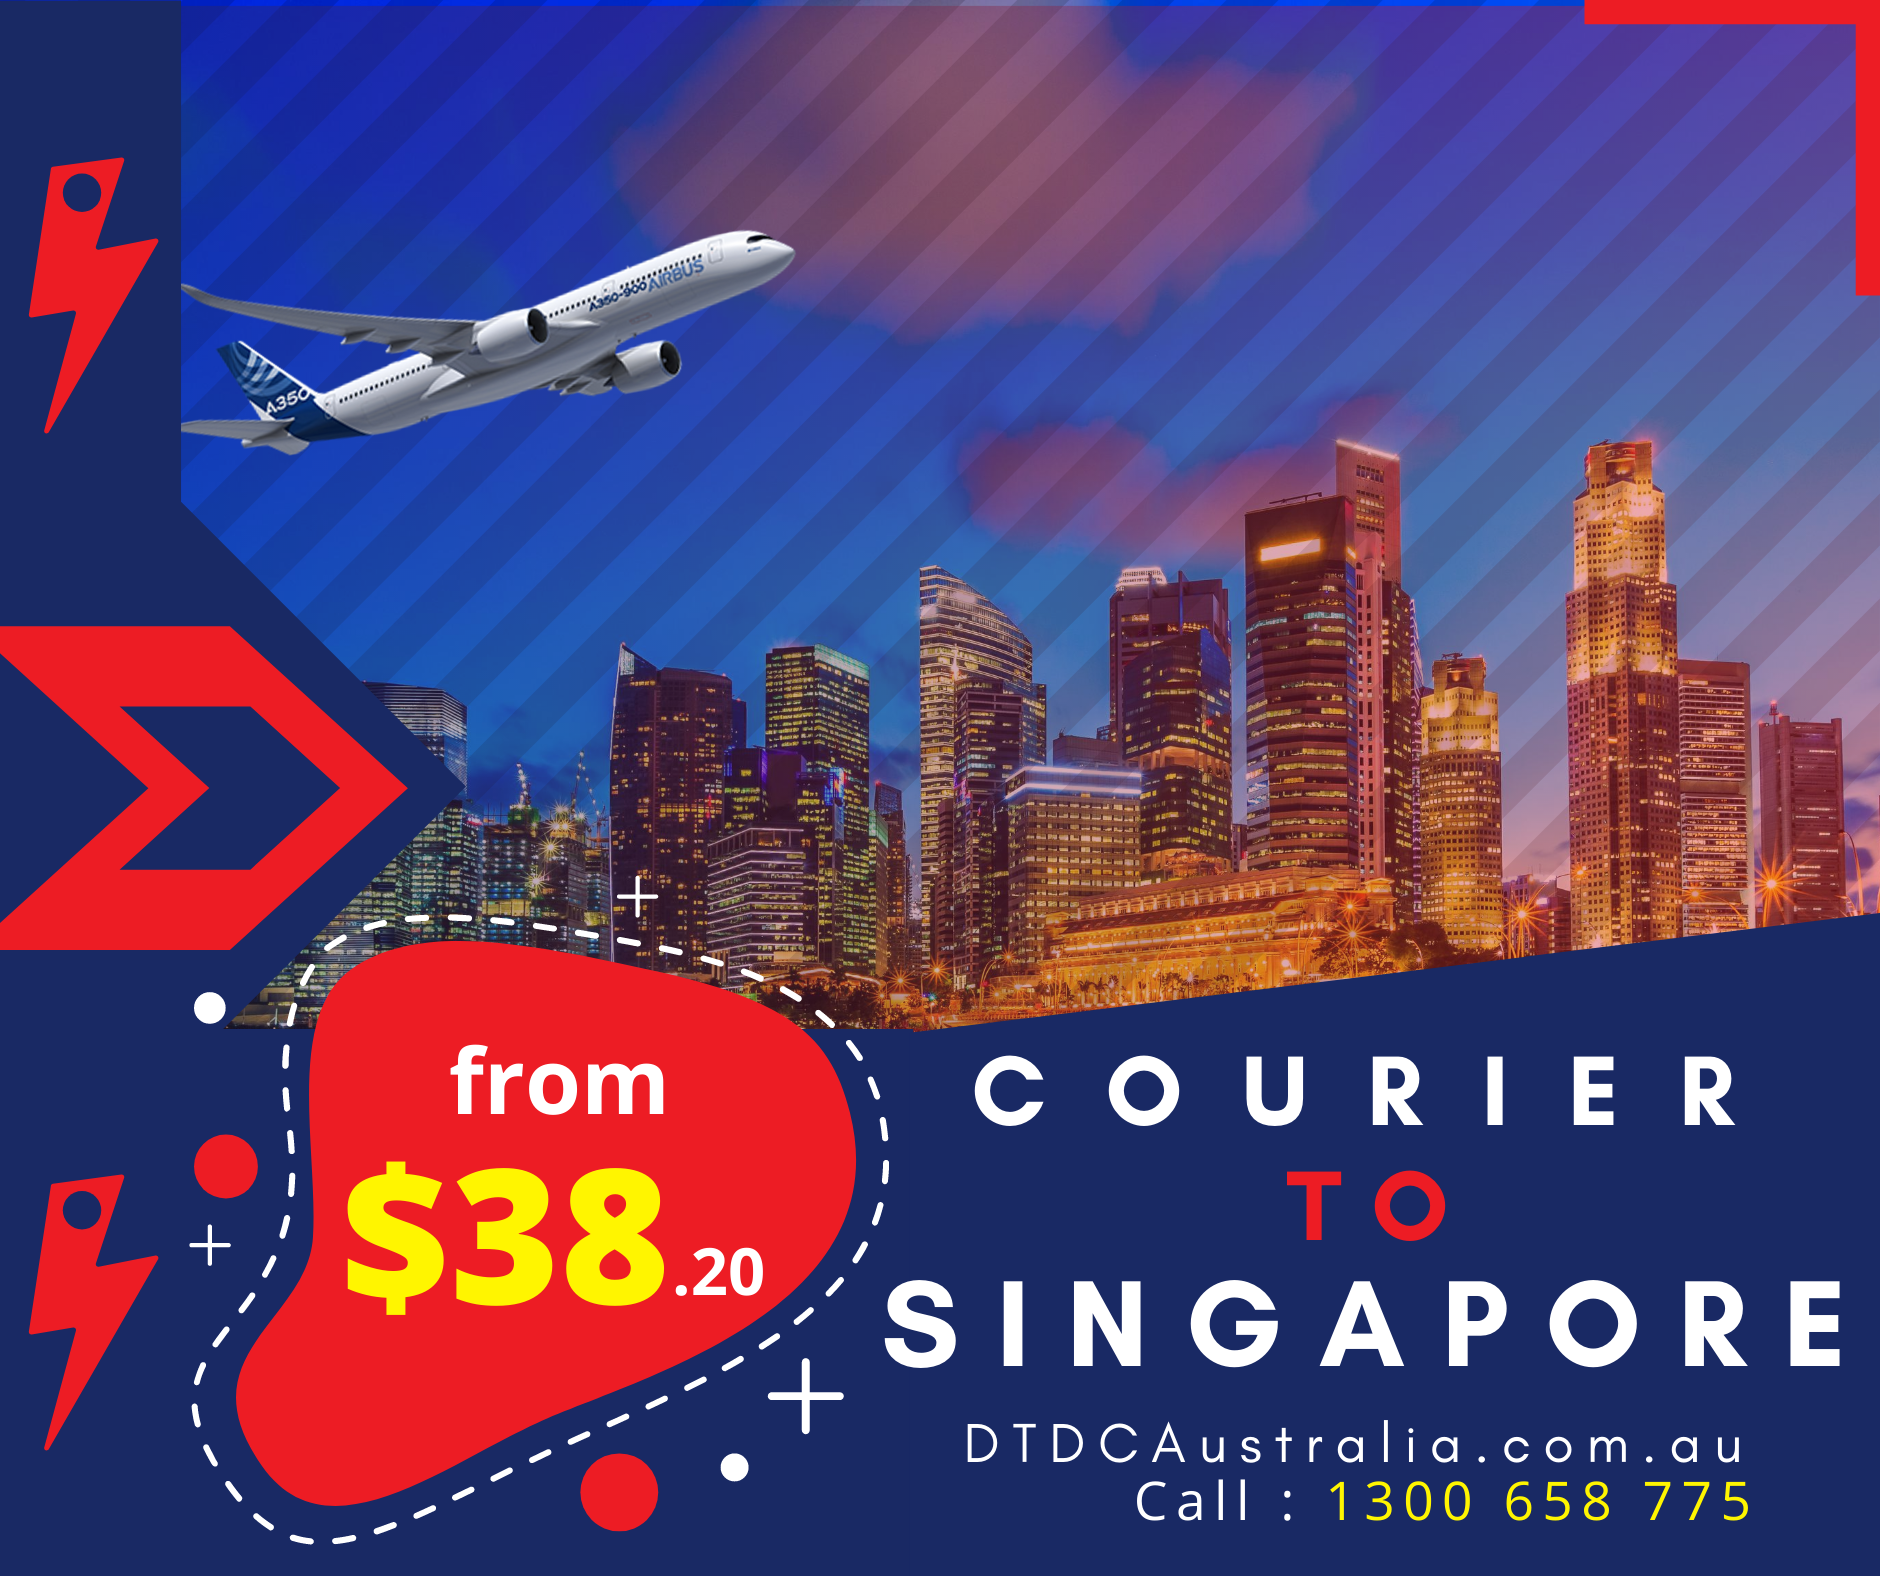 Courier to Singapore